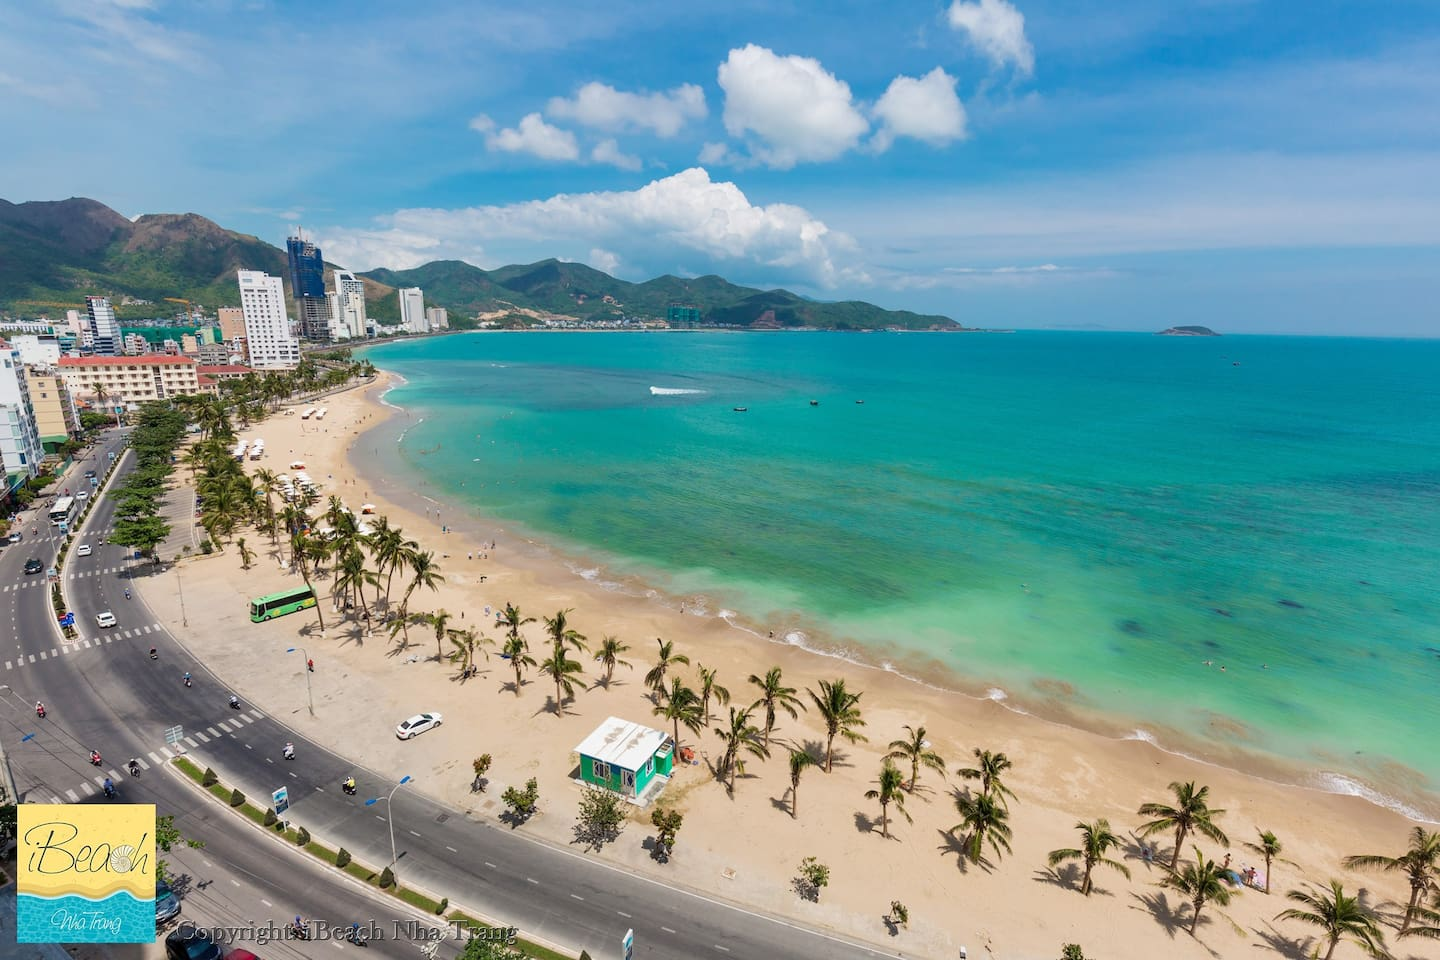 Nha Trang Bay - one in the most beautiful Bays of the world which is contemplated from your bedroom and living room